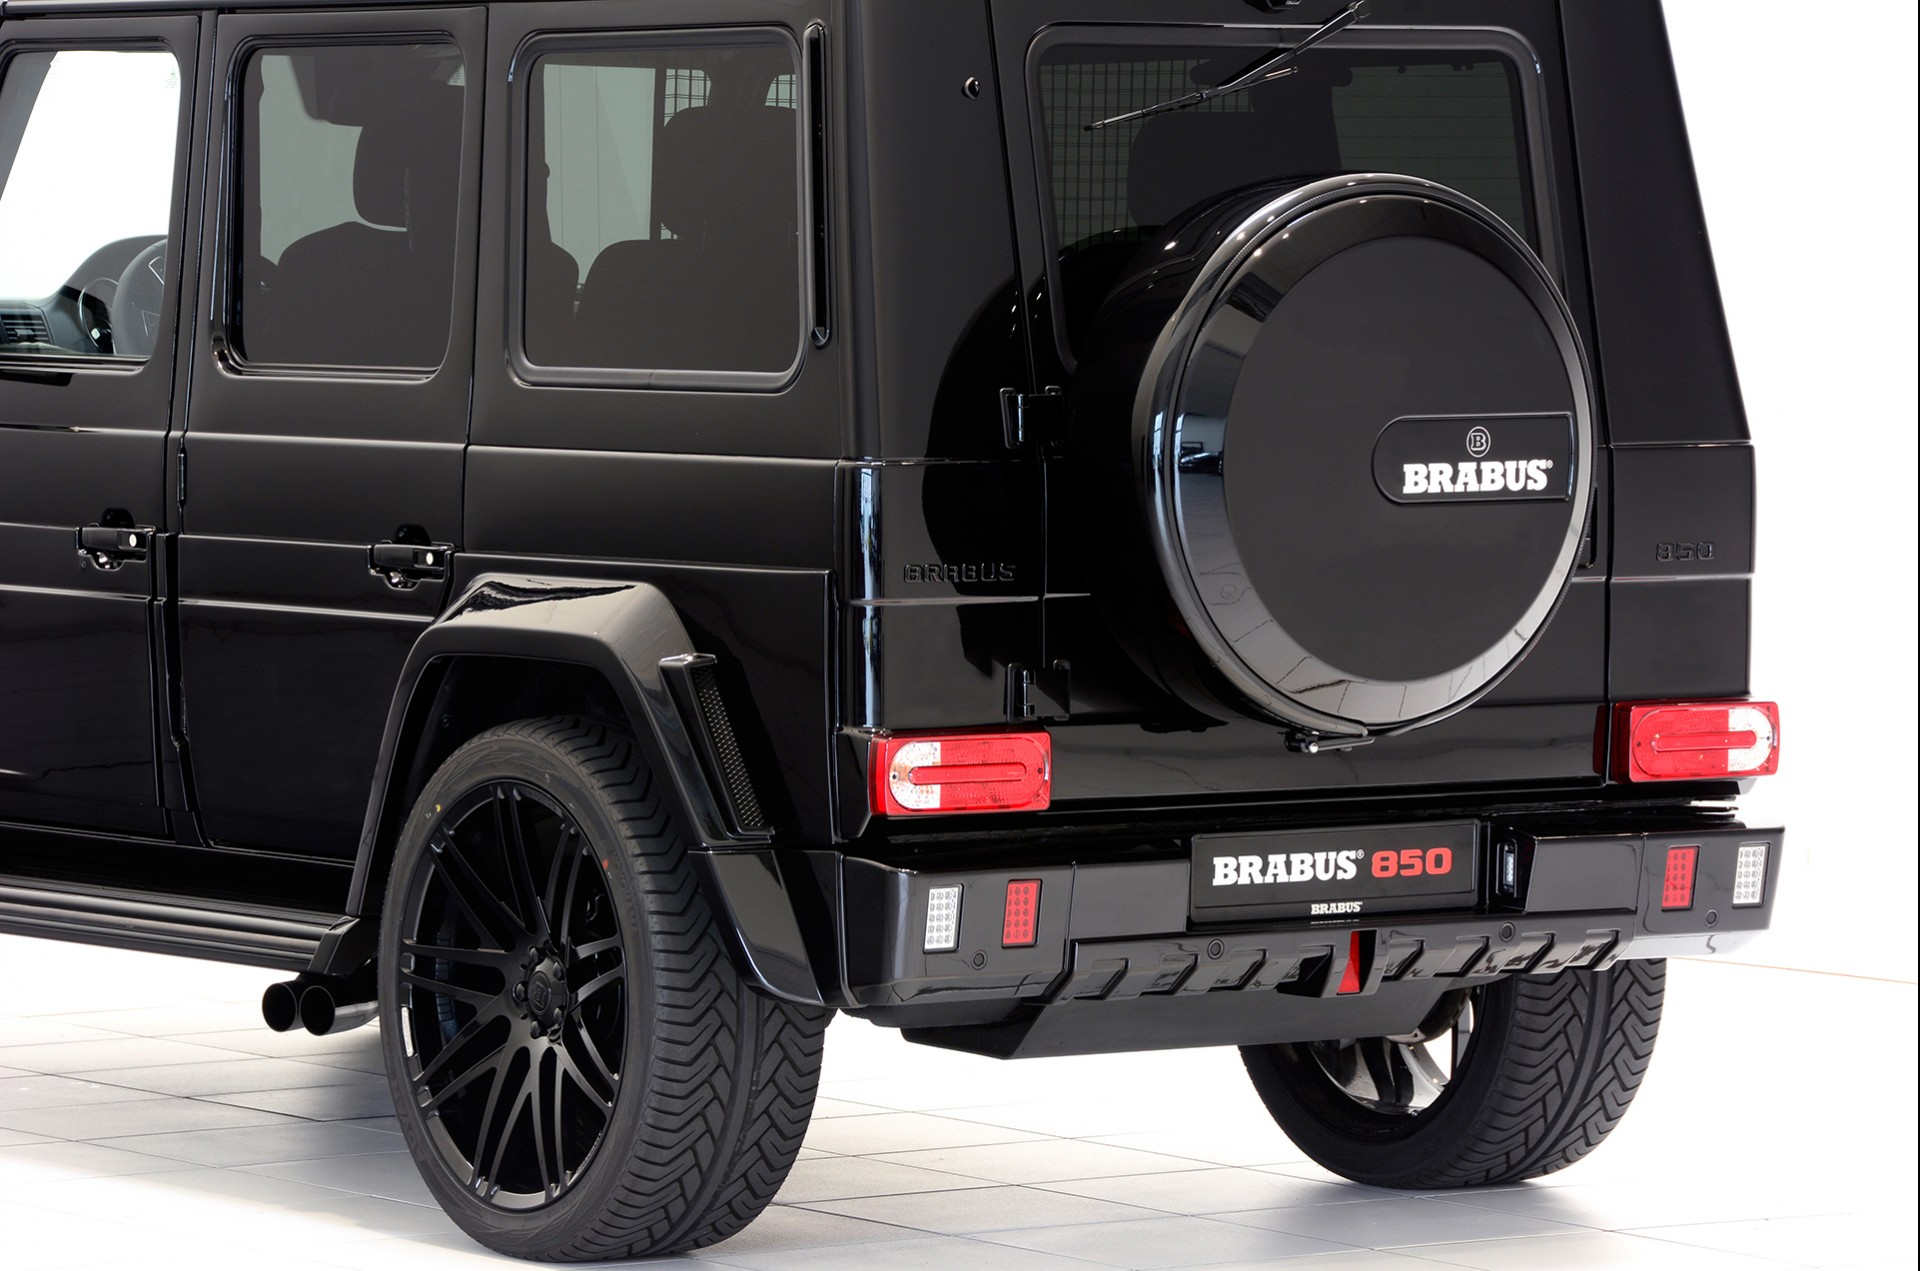 Brabus sports exhaust system for mercedes benz g class for Mercedes benz exhaust